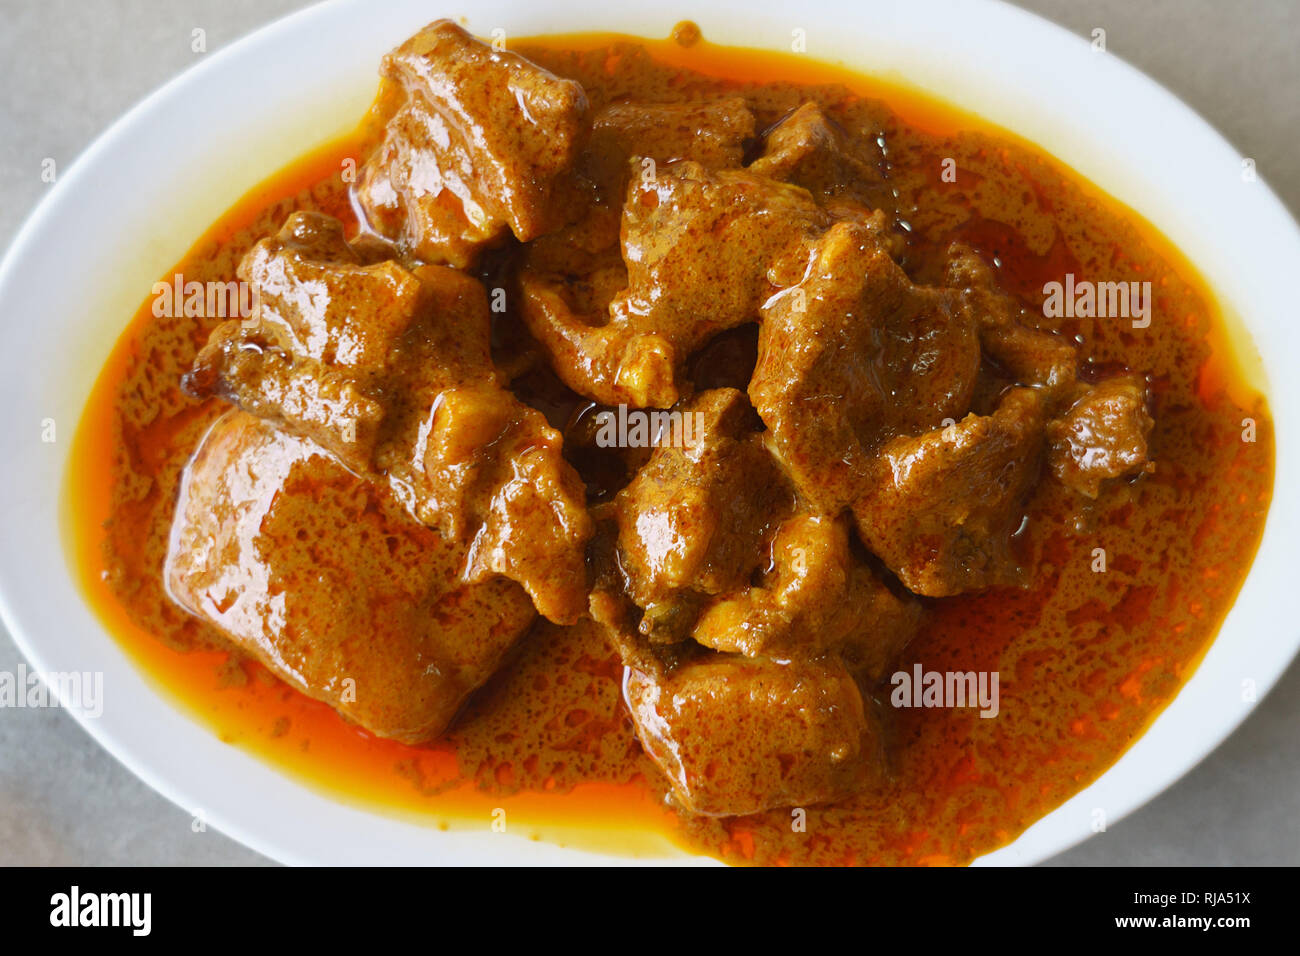 Malaysian street food a delicious Indian mutton curry on table setup. Stock Photo